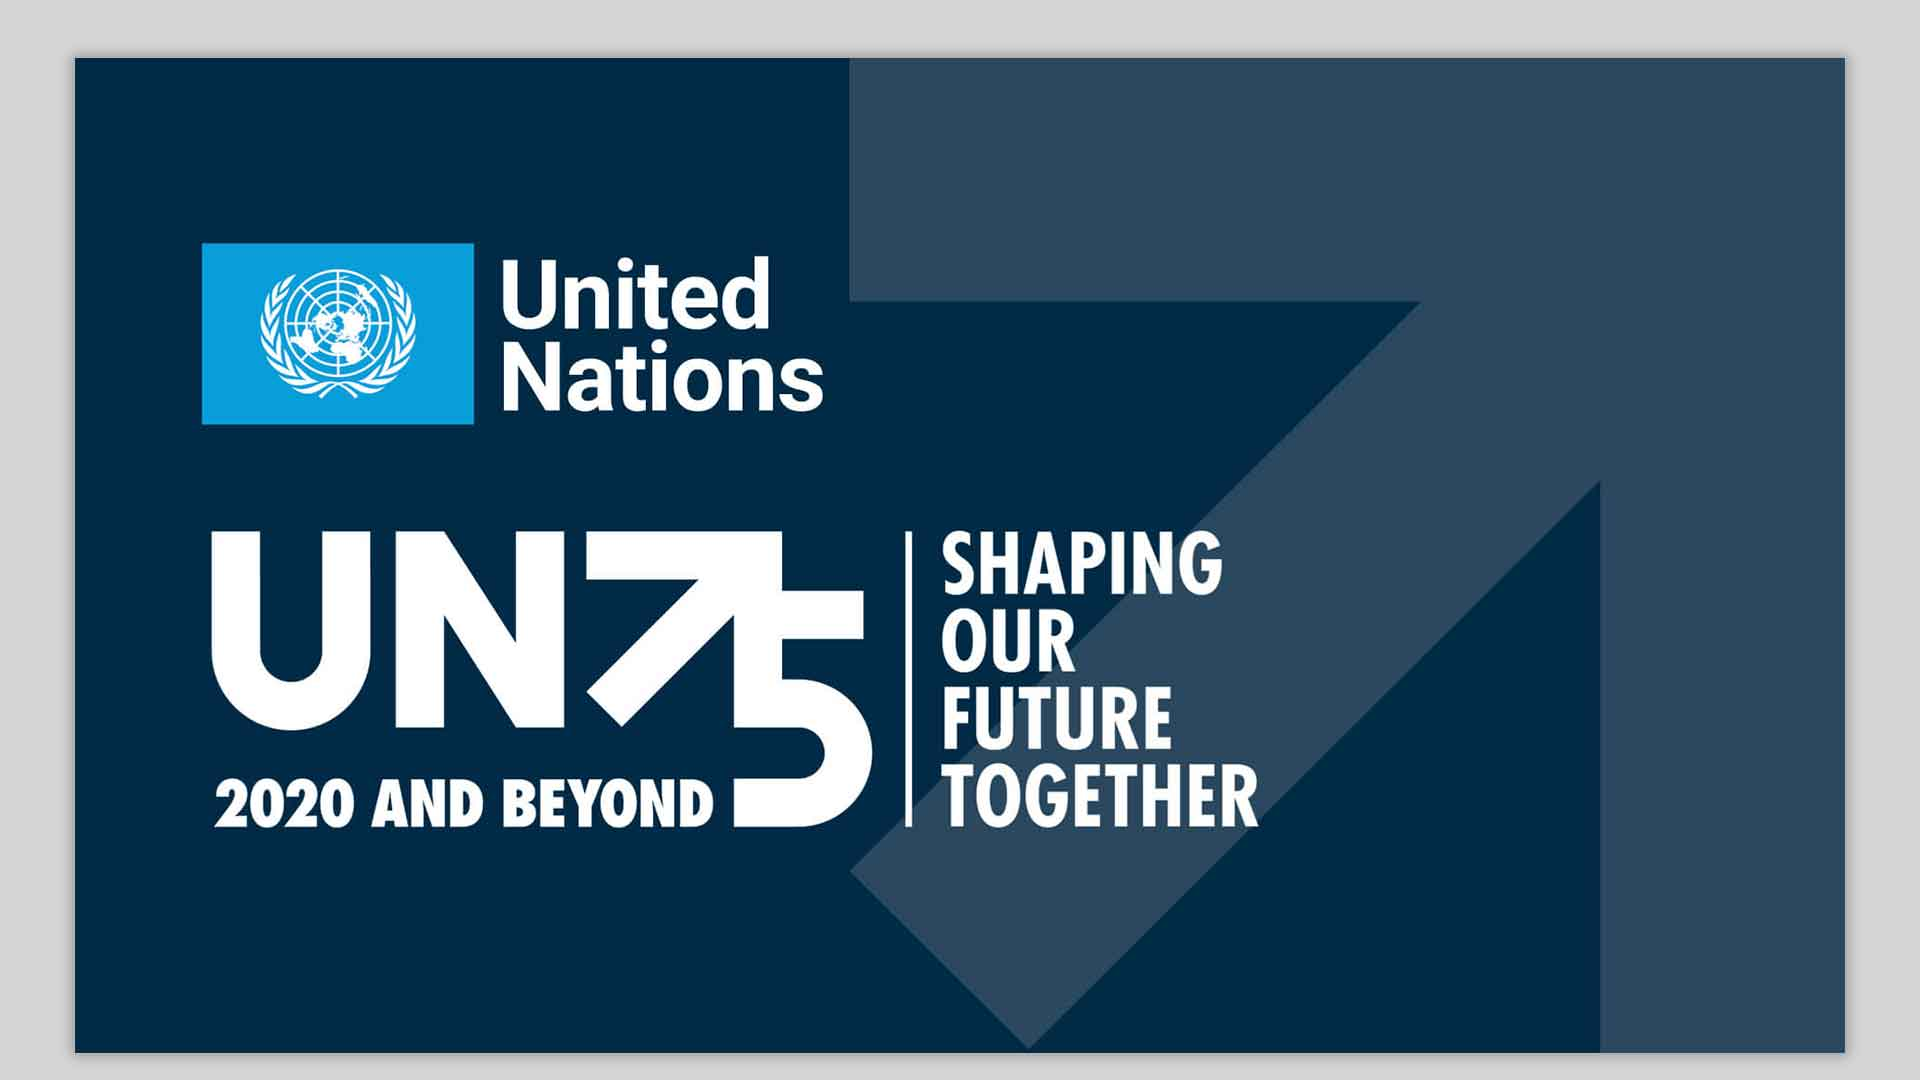 United Nations Template Design